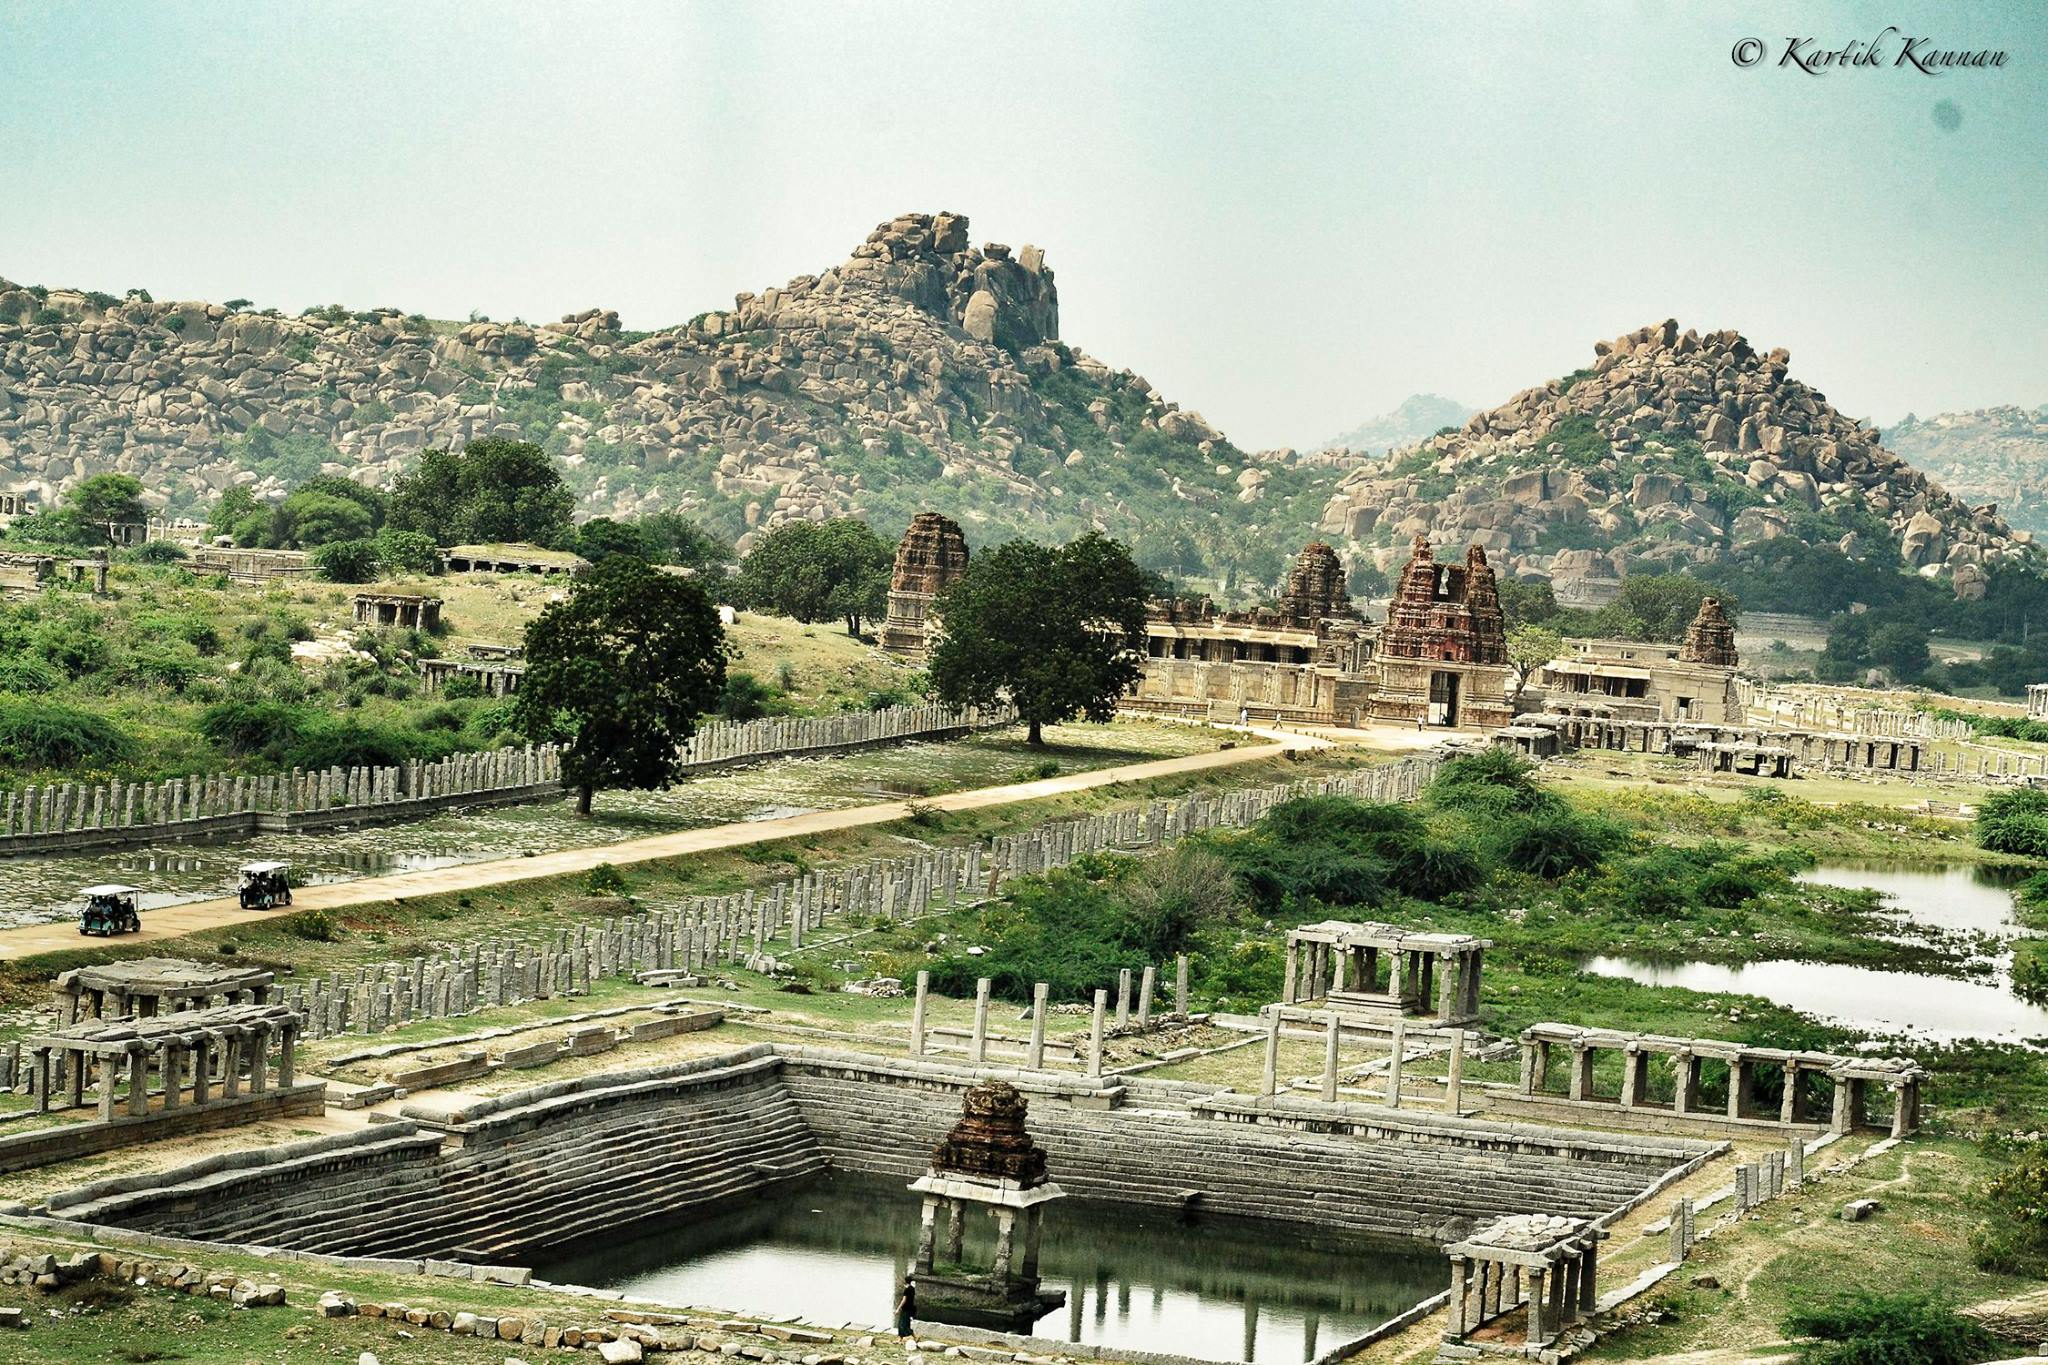 Panoramiciew of the Vitthala Temple